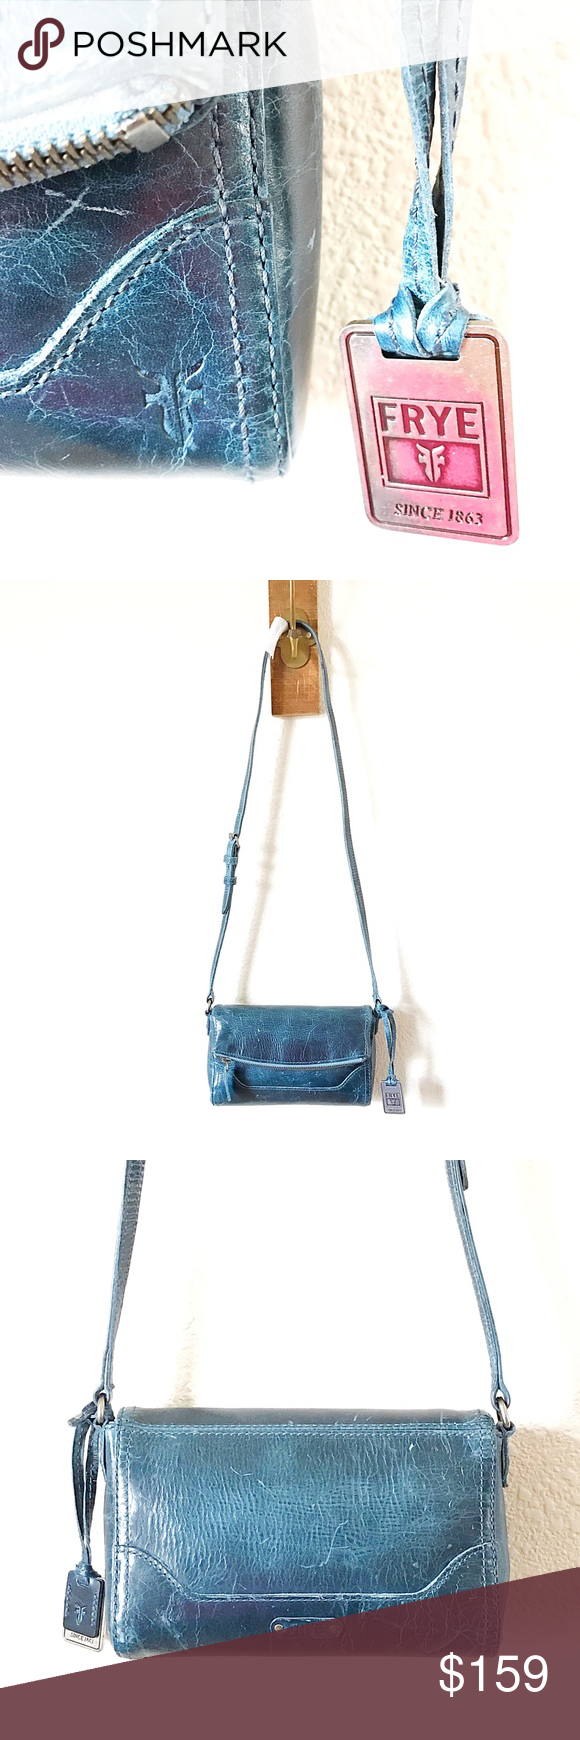 💥🌊NEW GORGEOUS FRYE LEATHER BAG🌊💥 OMG this bag is AWESOME!!! Such a beautiful color blue and it has such a cool rugged edgy leather look. Brand new with all tags attached & will be sent to you with the original dust bag (as pictured inside the bag). Frye Bags Crossbody Bags